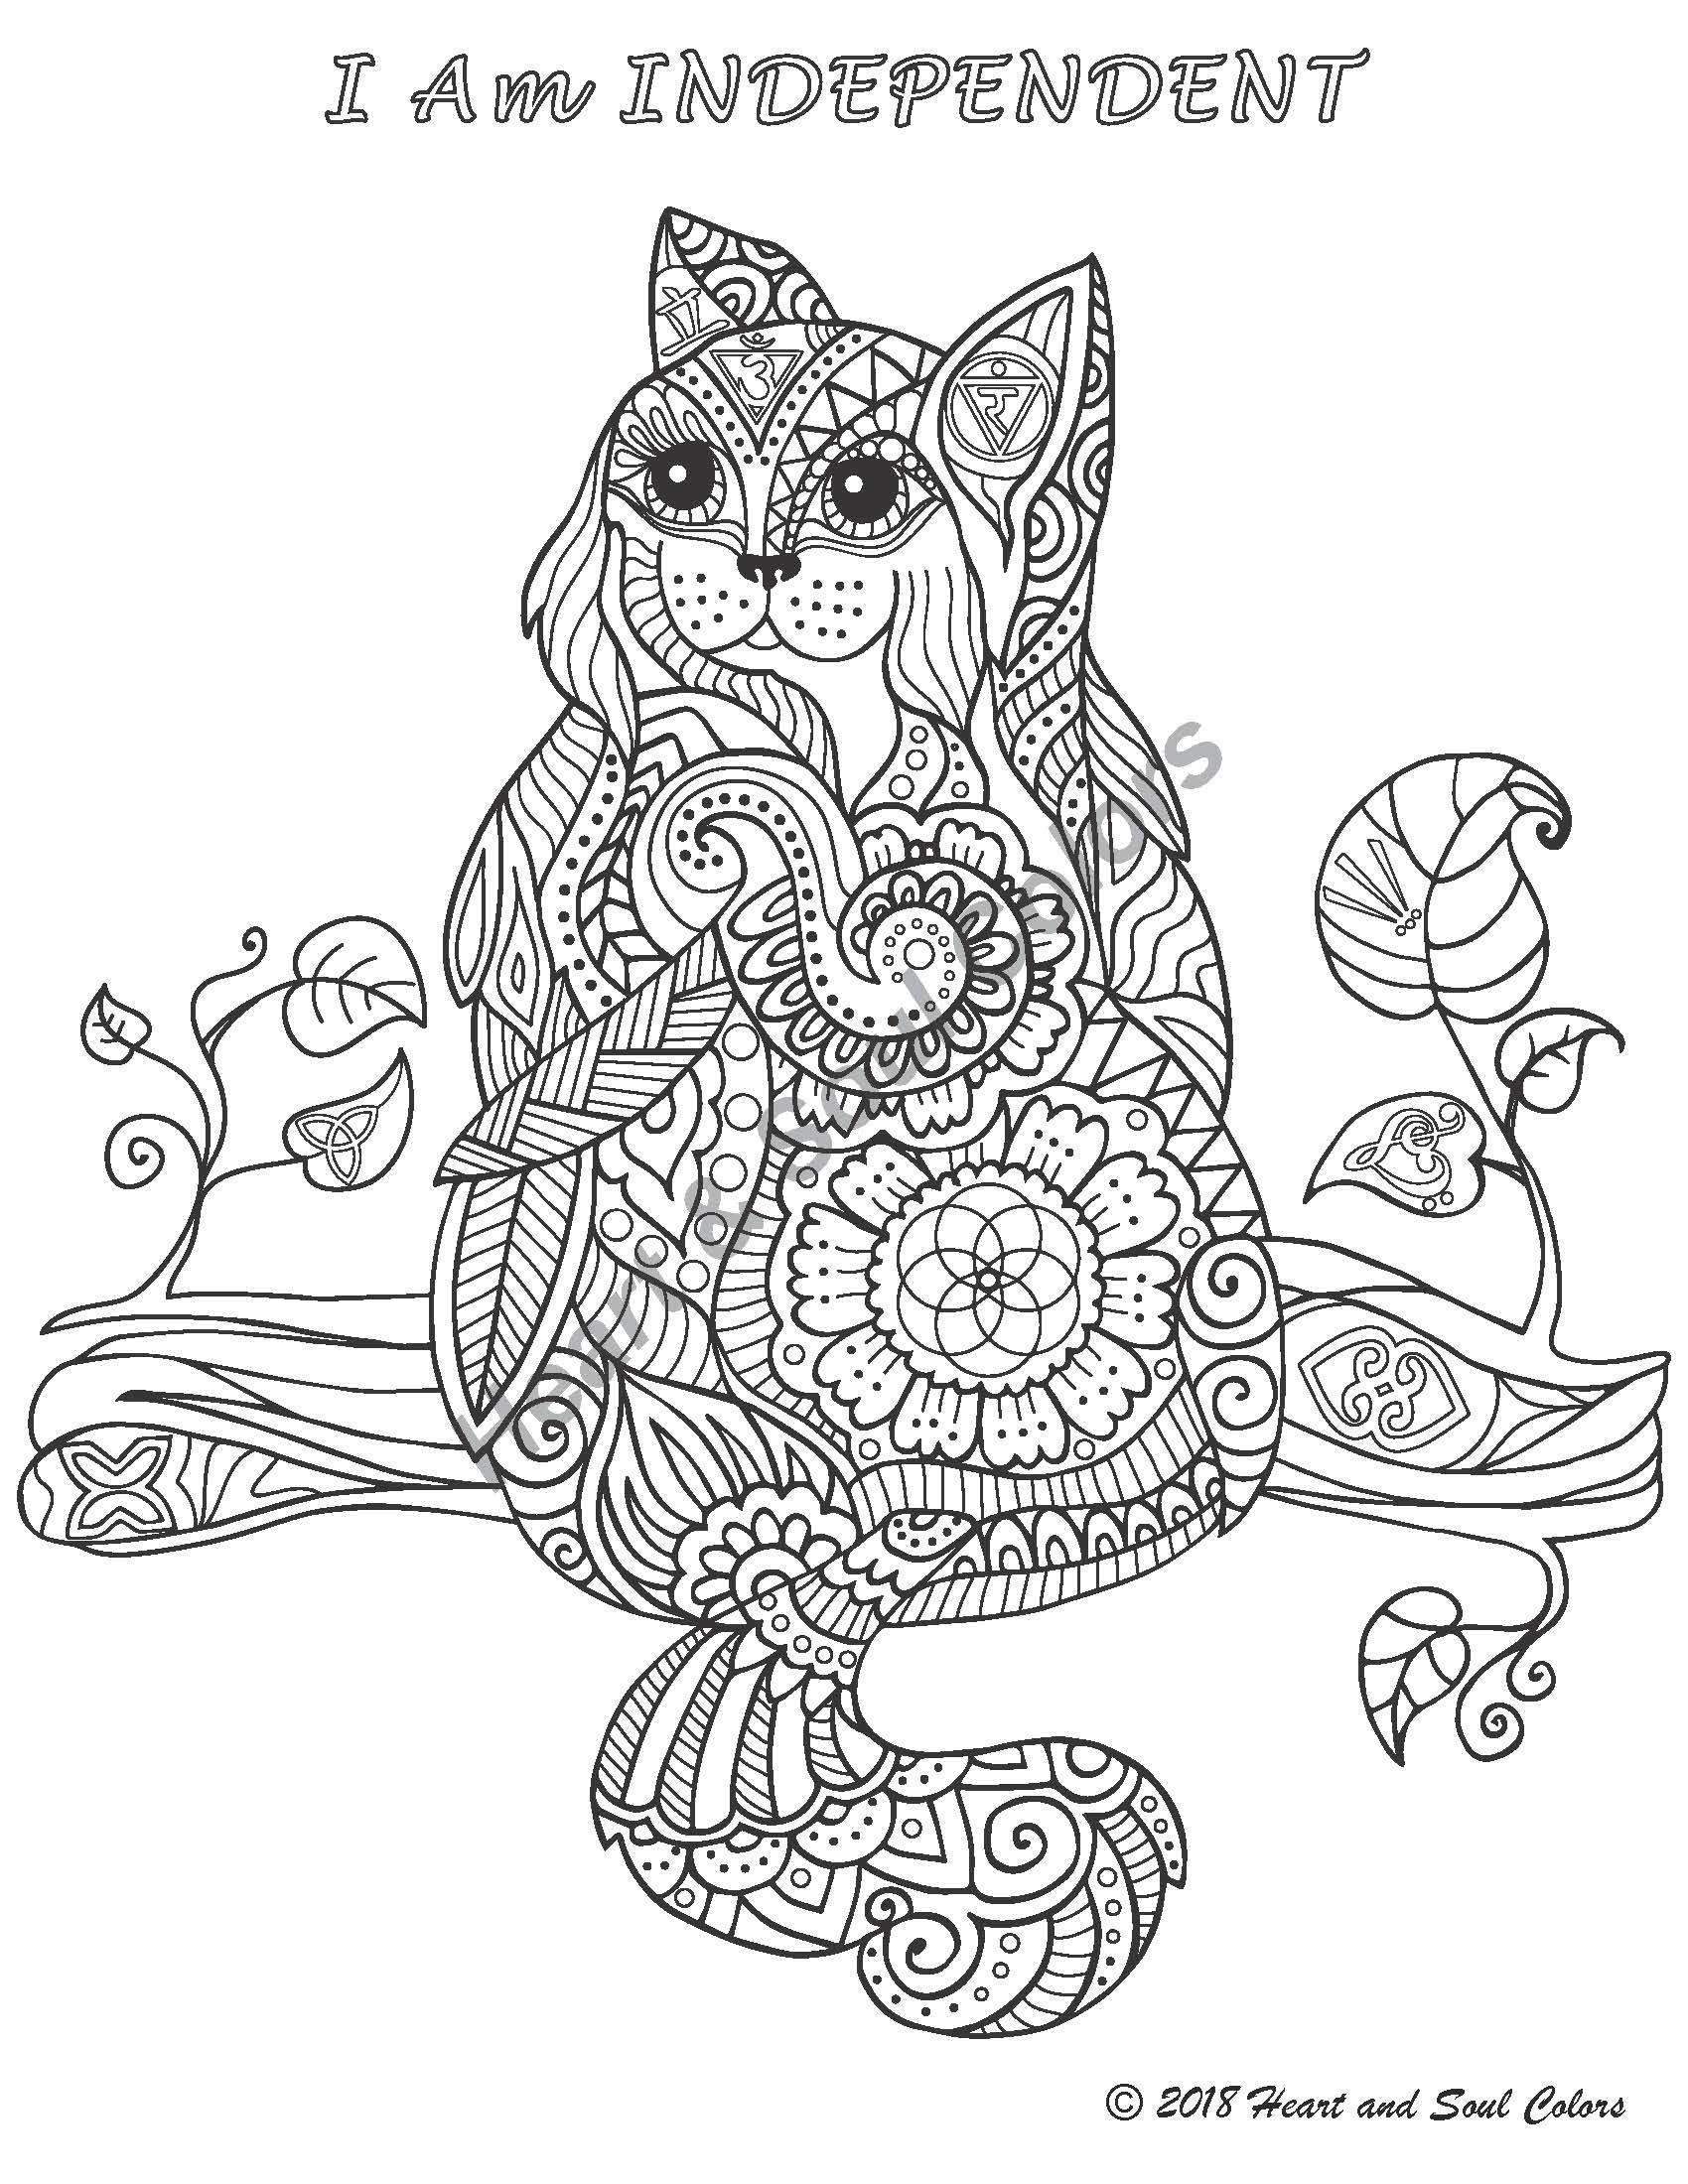 I Am INDEPENDENT Cat, coloring design including sacred geometry and many powerful, hidden symbols